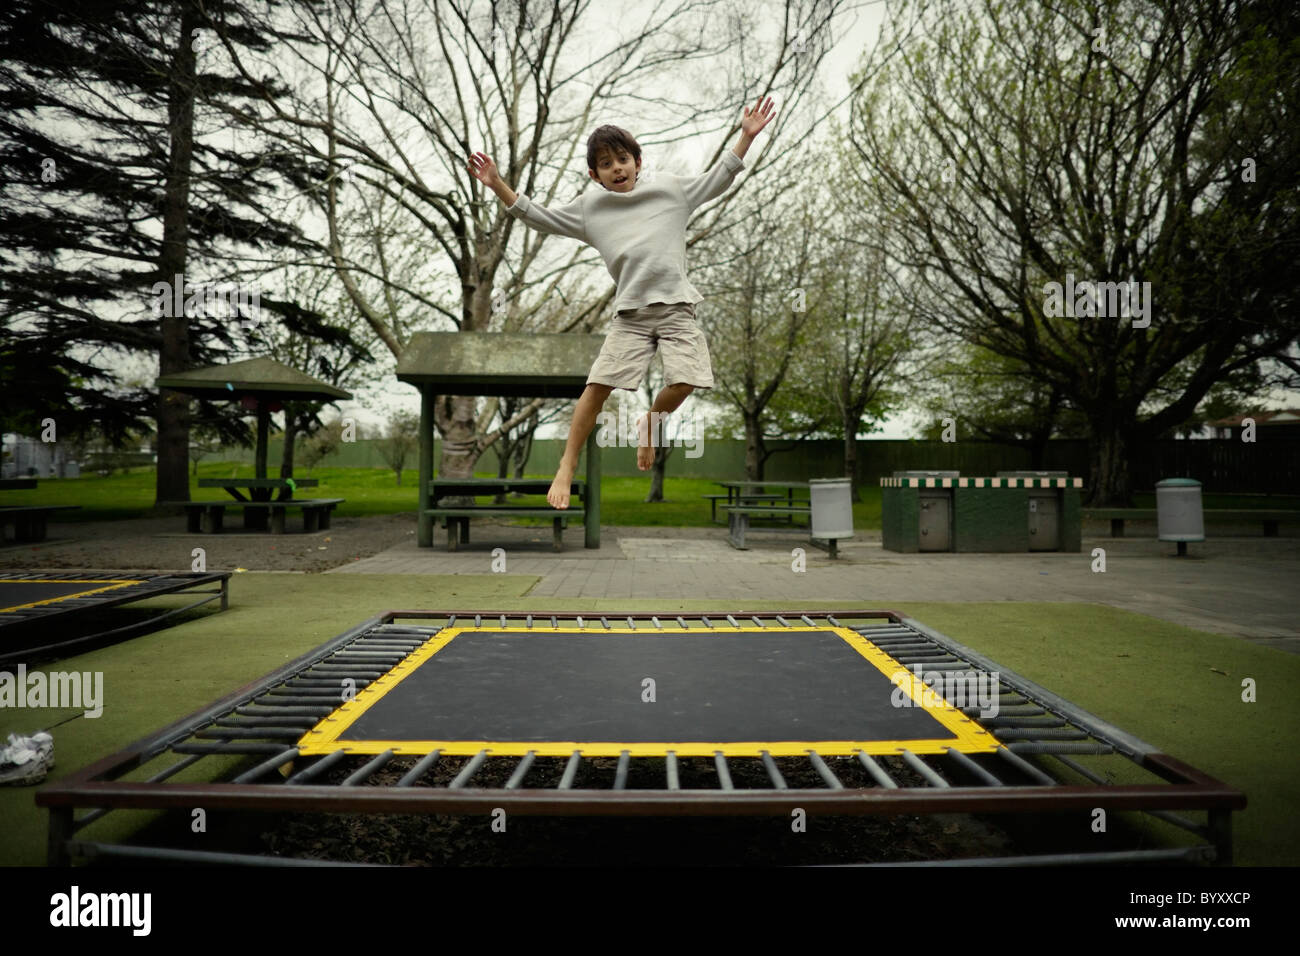 Boy bounces on trampoline in public play ground, New Zealand. - Stock Image